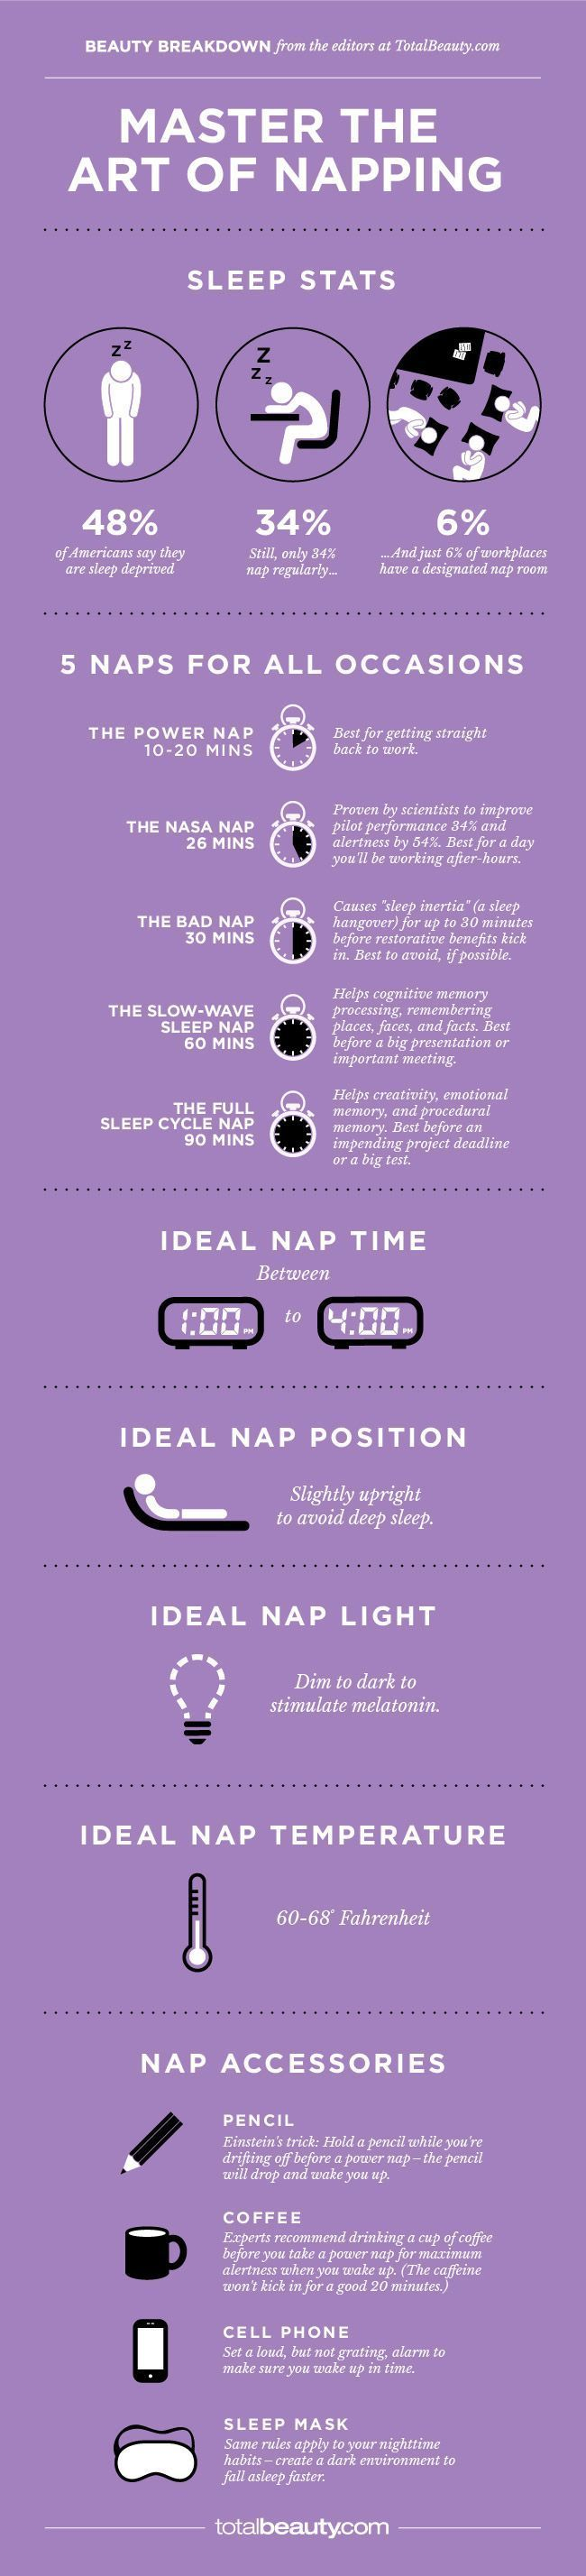 It's easy to take a nap, but how about taking a nap effectively?